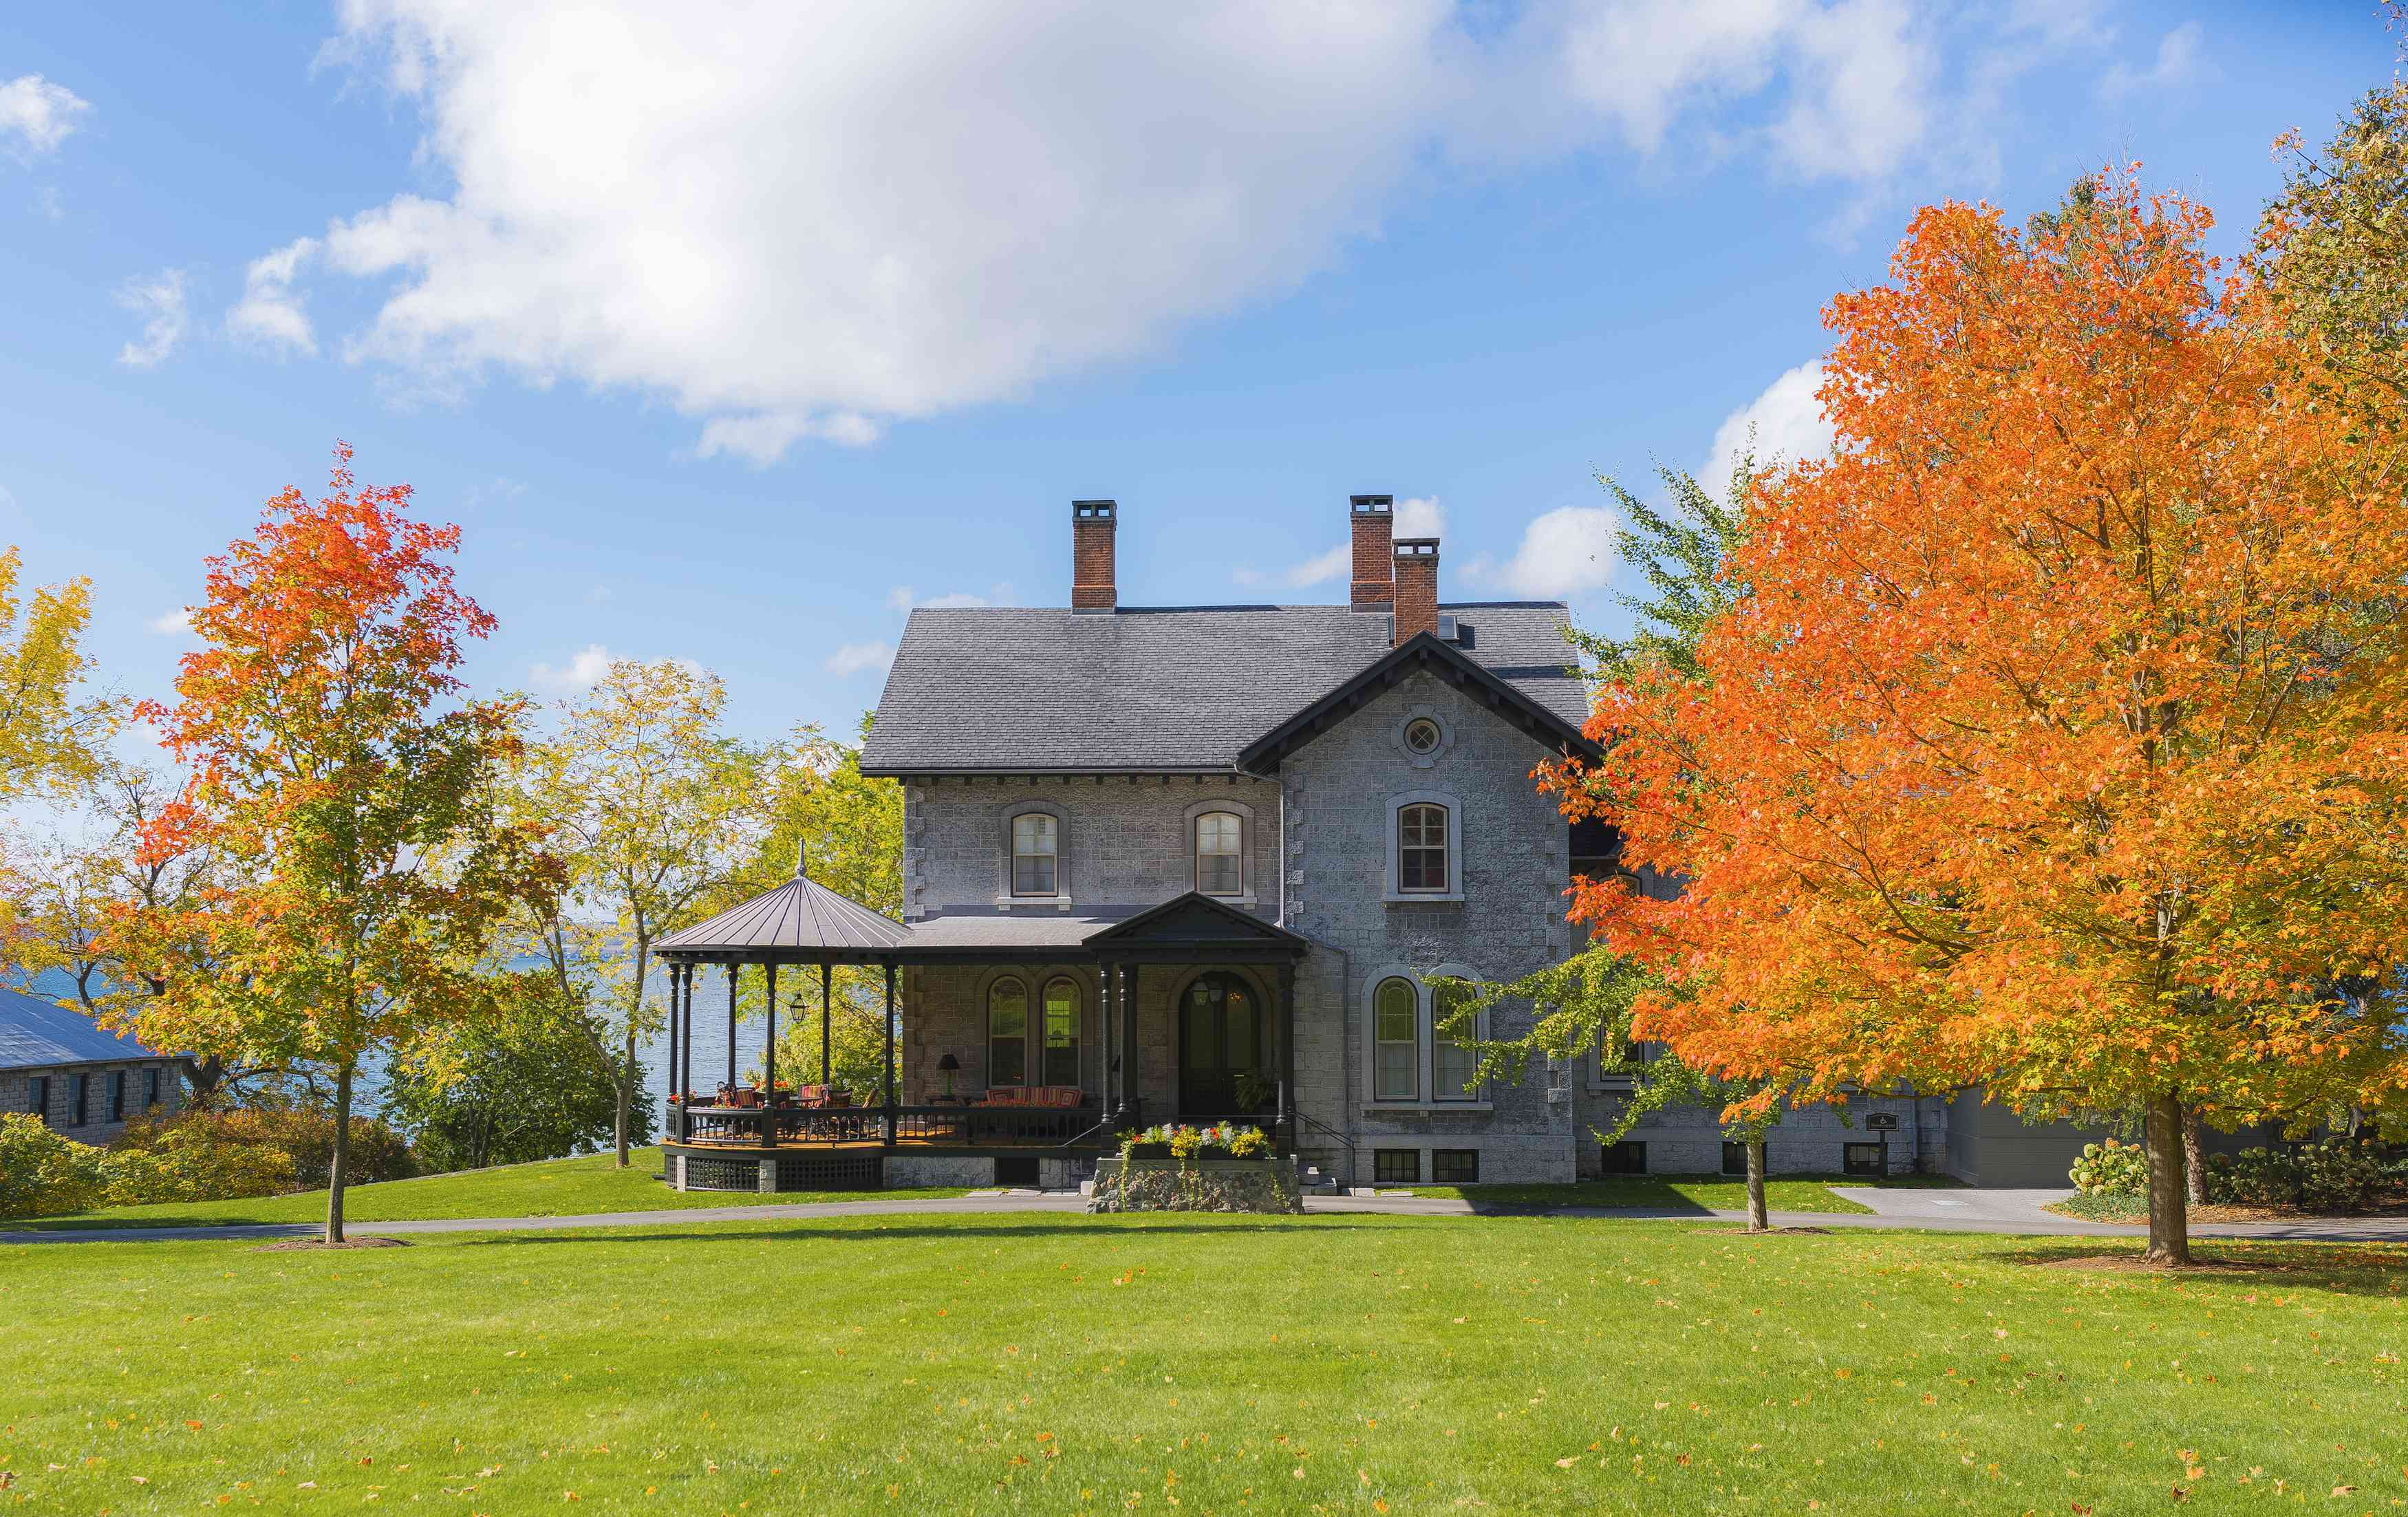 Views of the fall foliage at Inns of Aurora